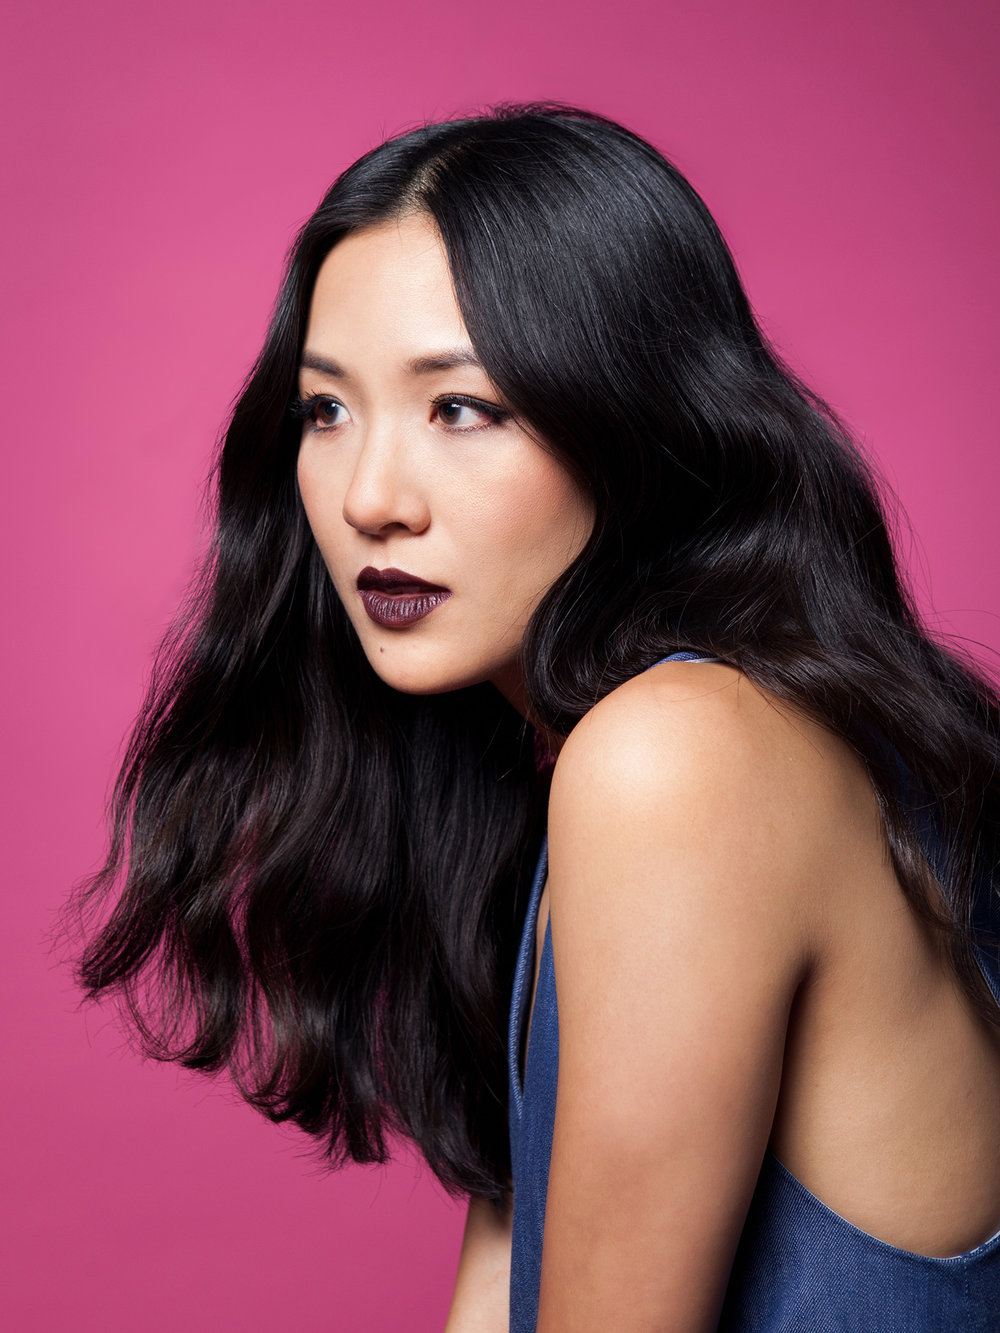 Constance Wu - Actress advocating for more Asian roles in Hollywood